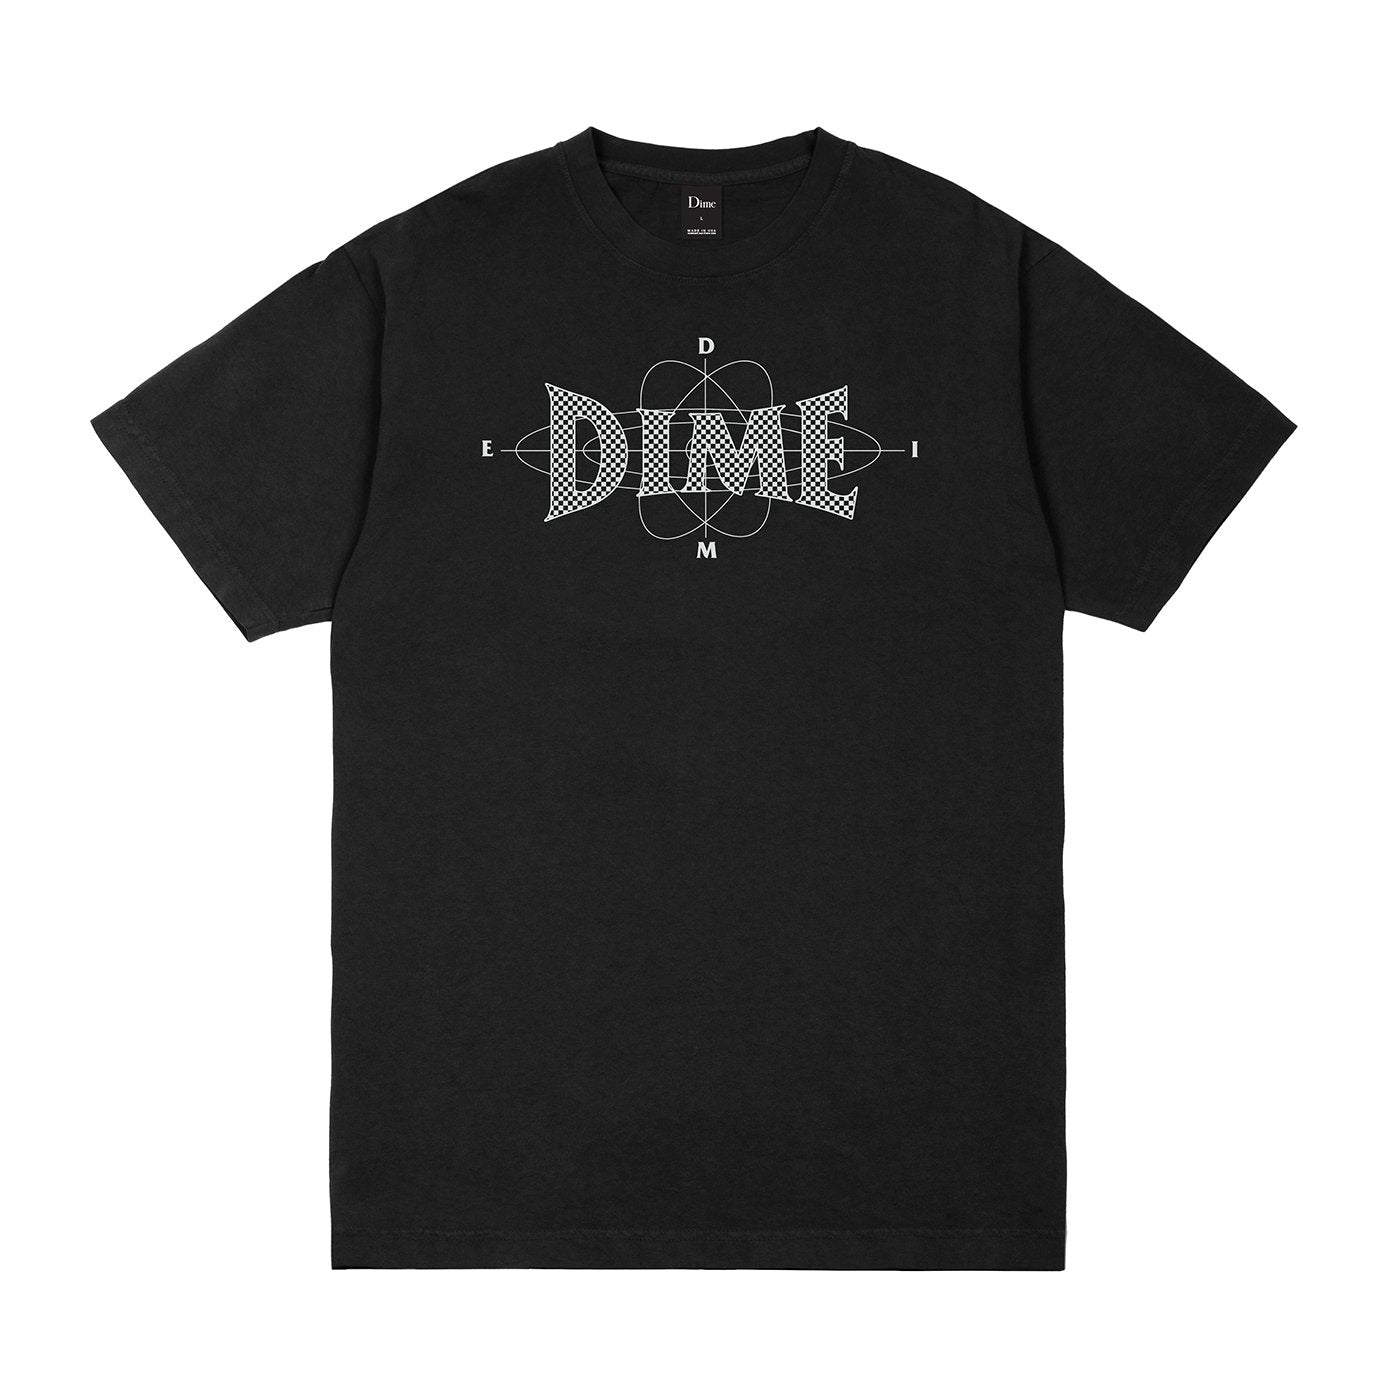 Dime Dime Zone Tee Product Photo #1